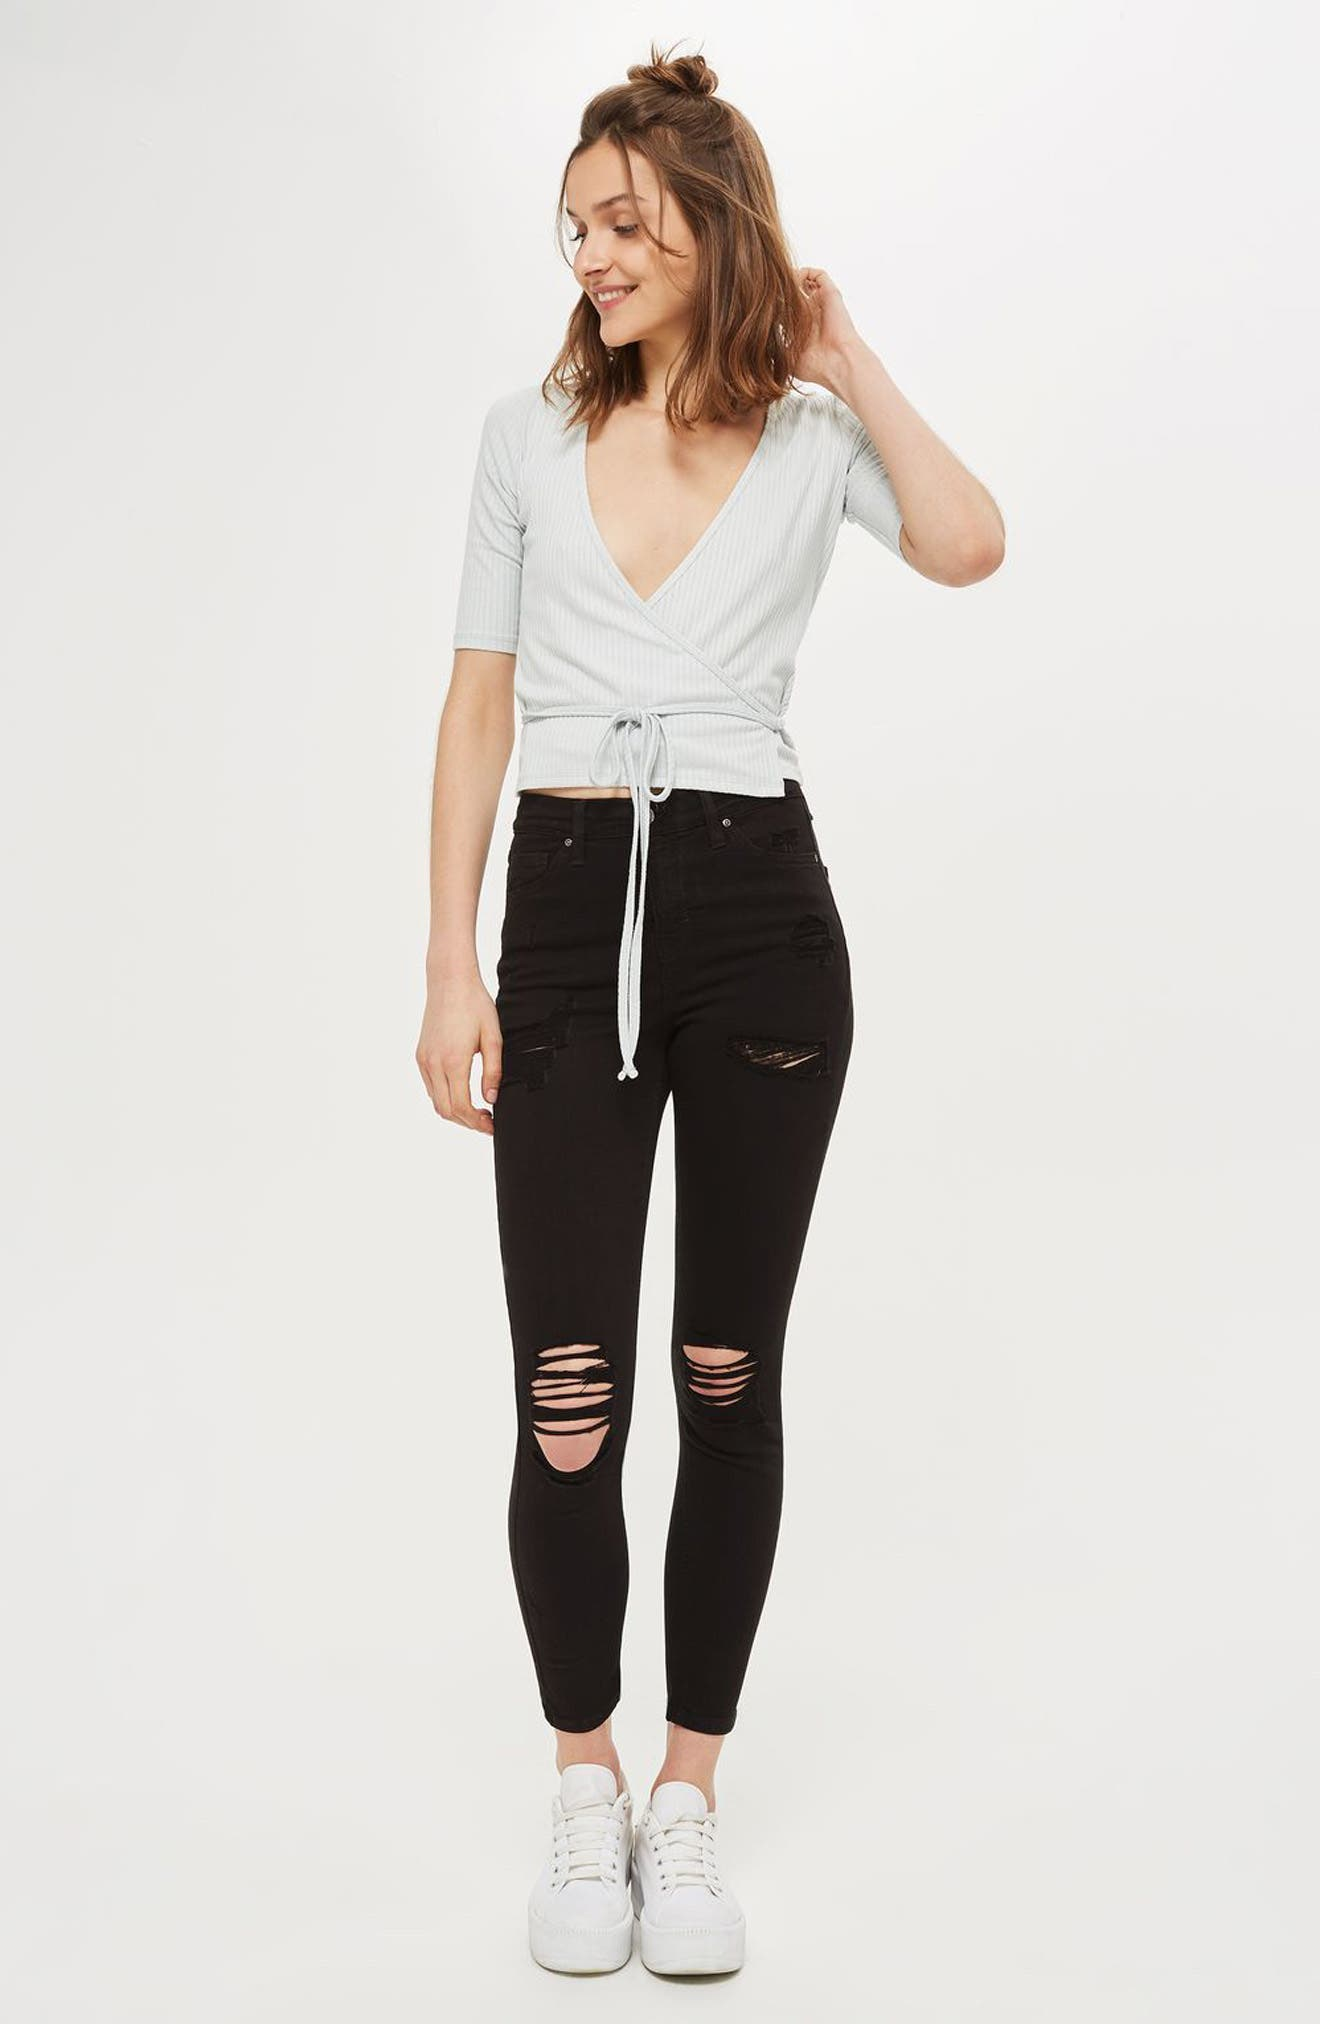 Ripped High Waist Ankle Skinny Jeans,                             Alternate thumbnail 12, color,                             001